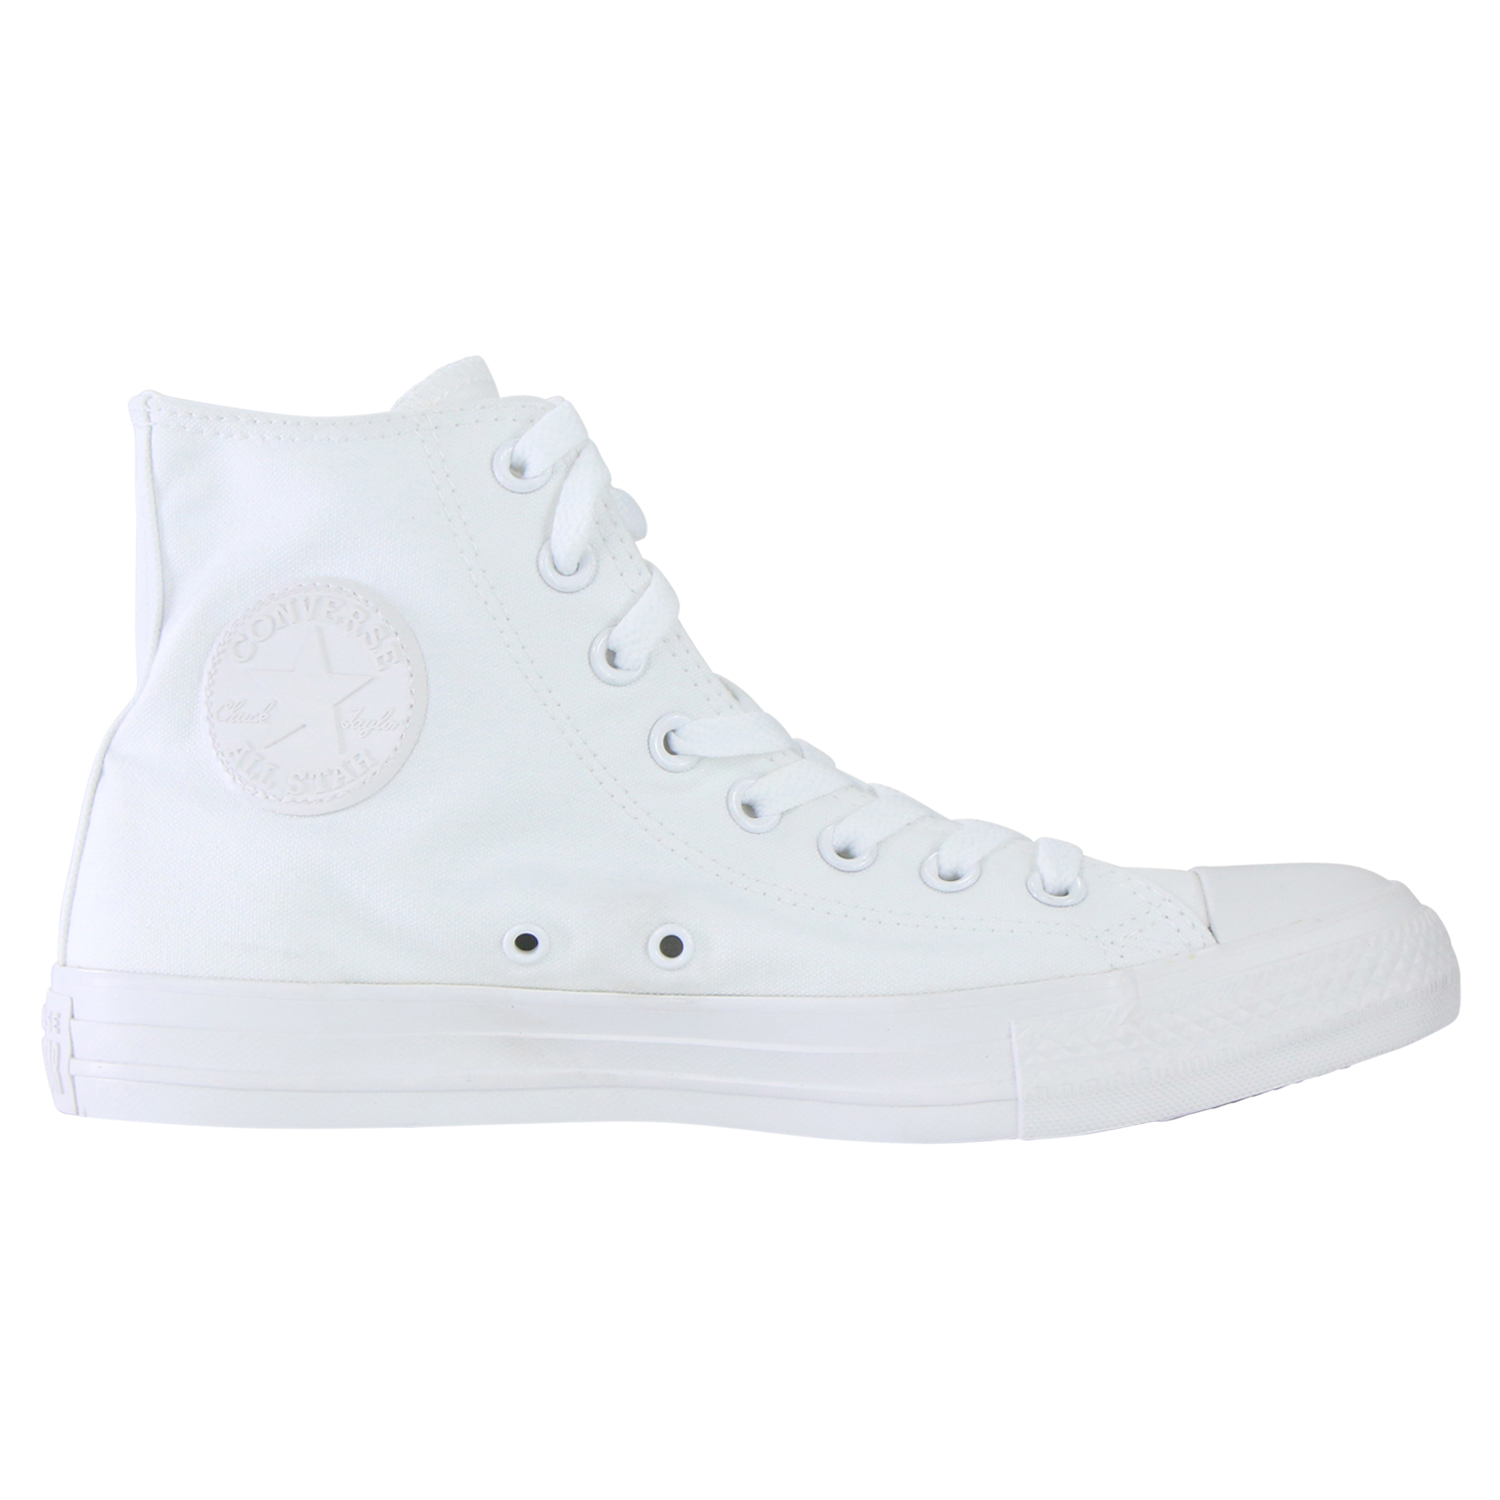 converse chuck taylor all star hi schuhe sneaker high top. Black Bedroom Furniture Sets. Home Design Ideas